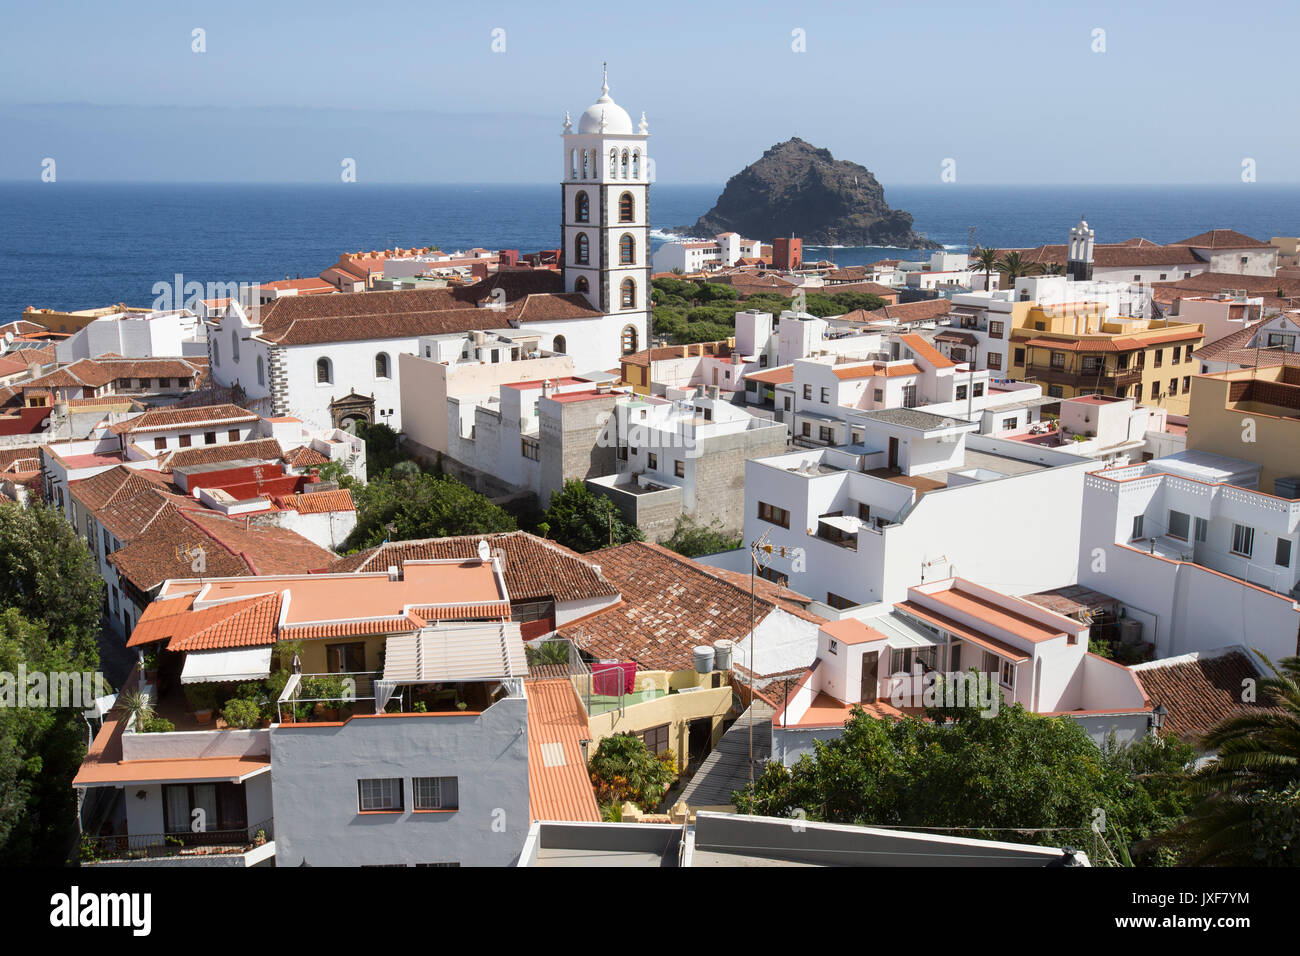 The town of Garachico in Tenerife, Canary Islands. - Stock Image